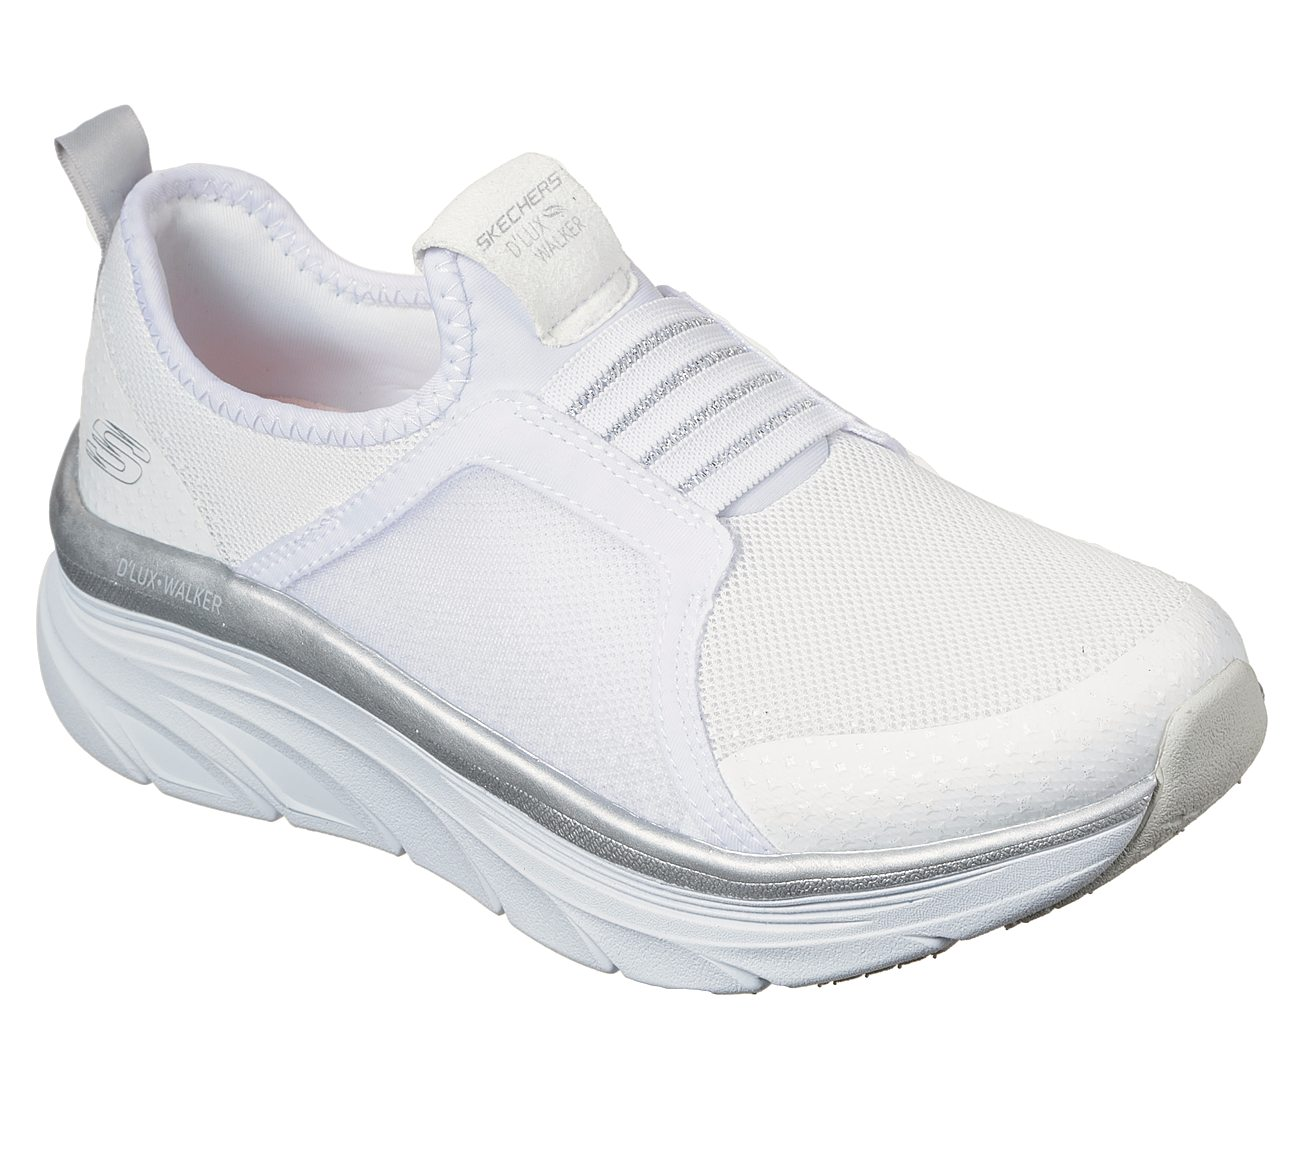 skechers relaxed fit white